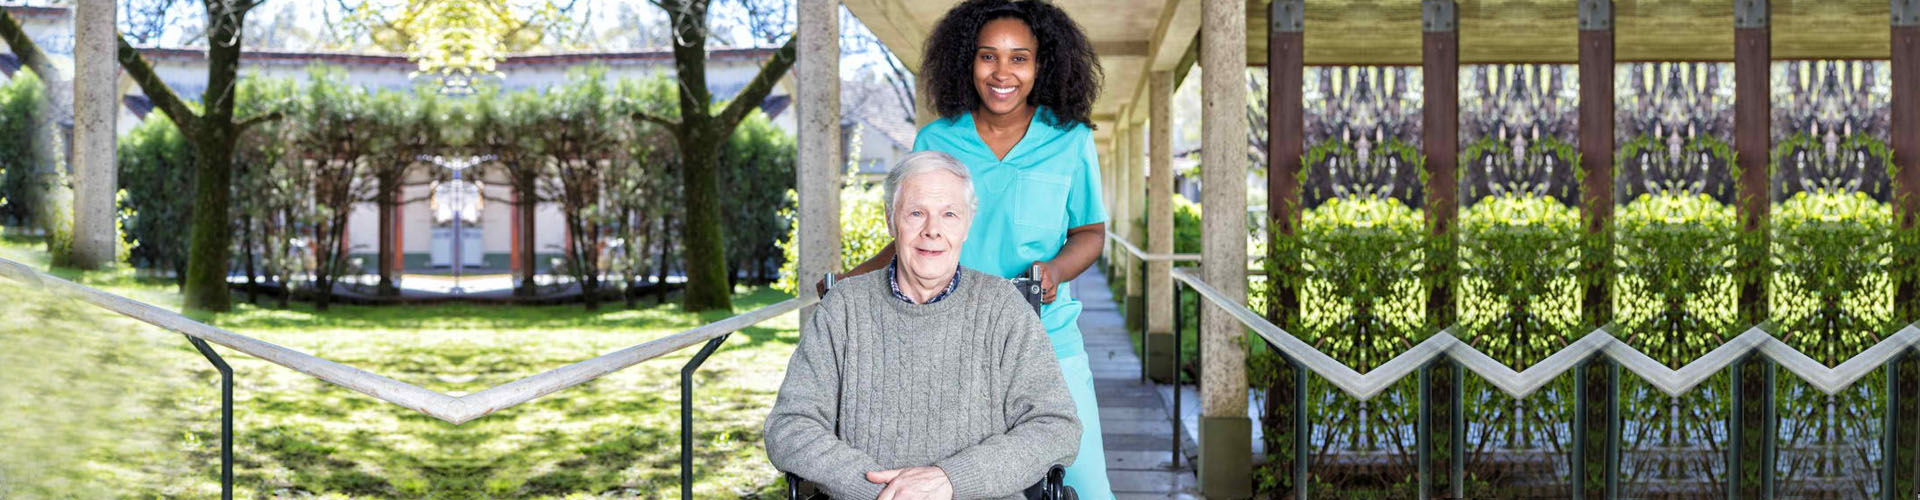 a caregiver and a senior man in a wheelchair smiling